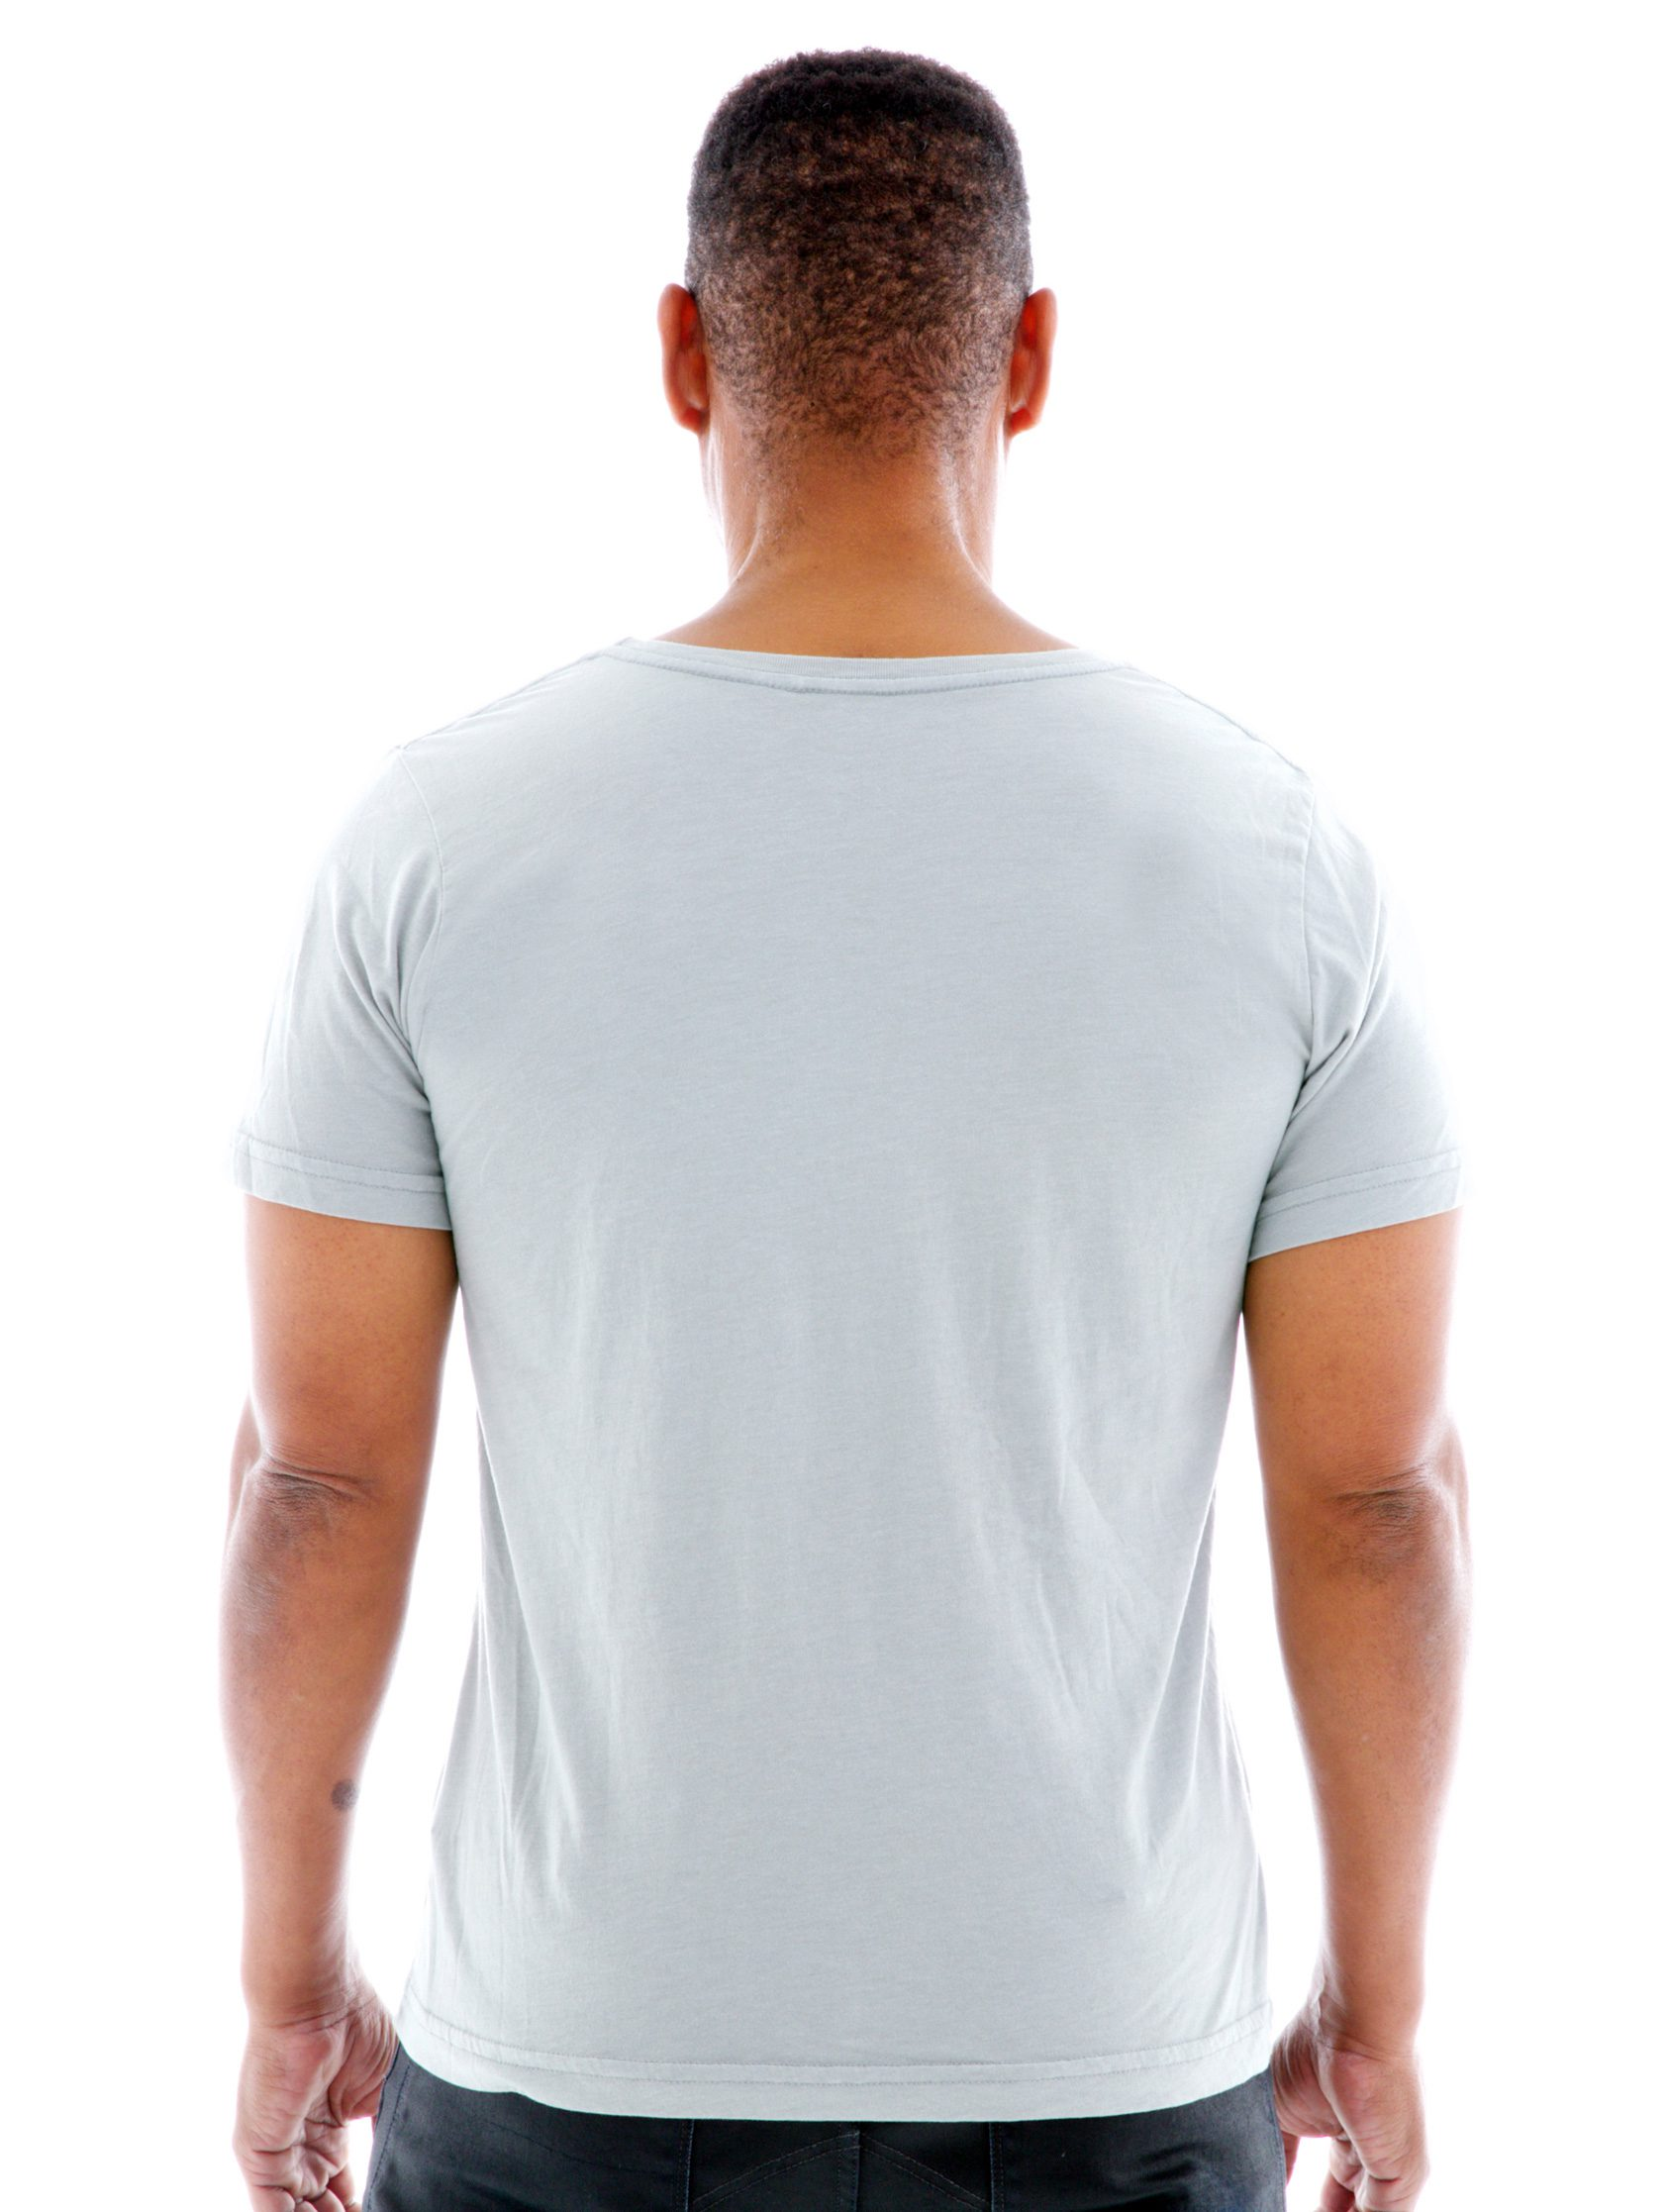 Superfine Jersey Fashion Crew Short Sleeve T-Shirt Back View